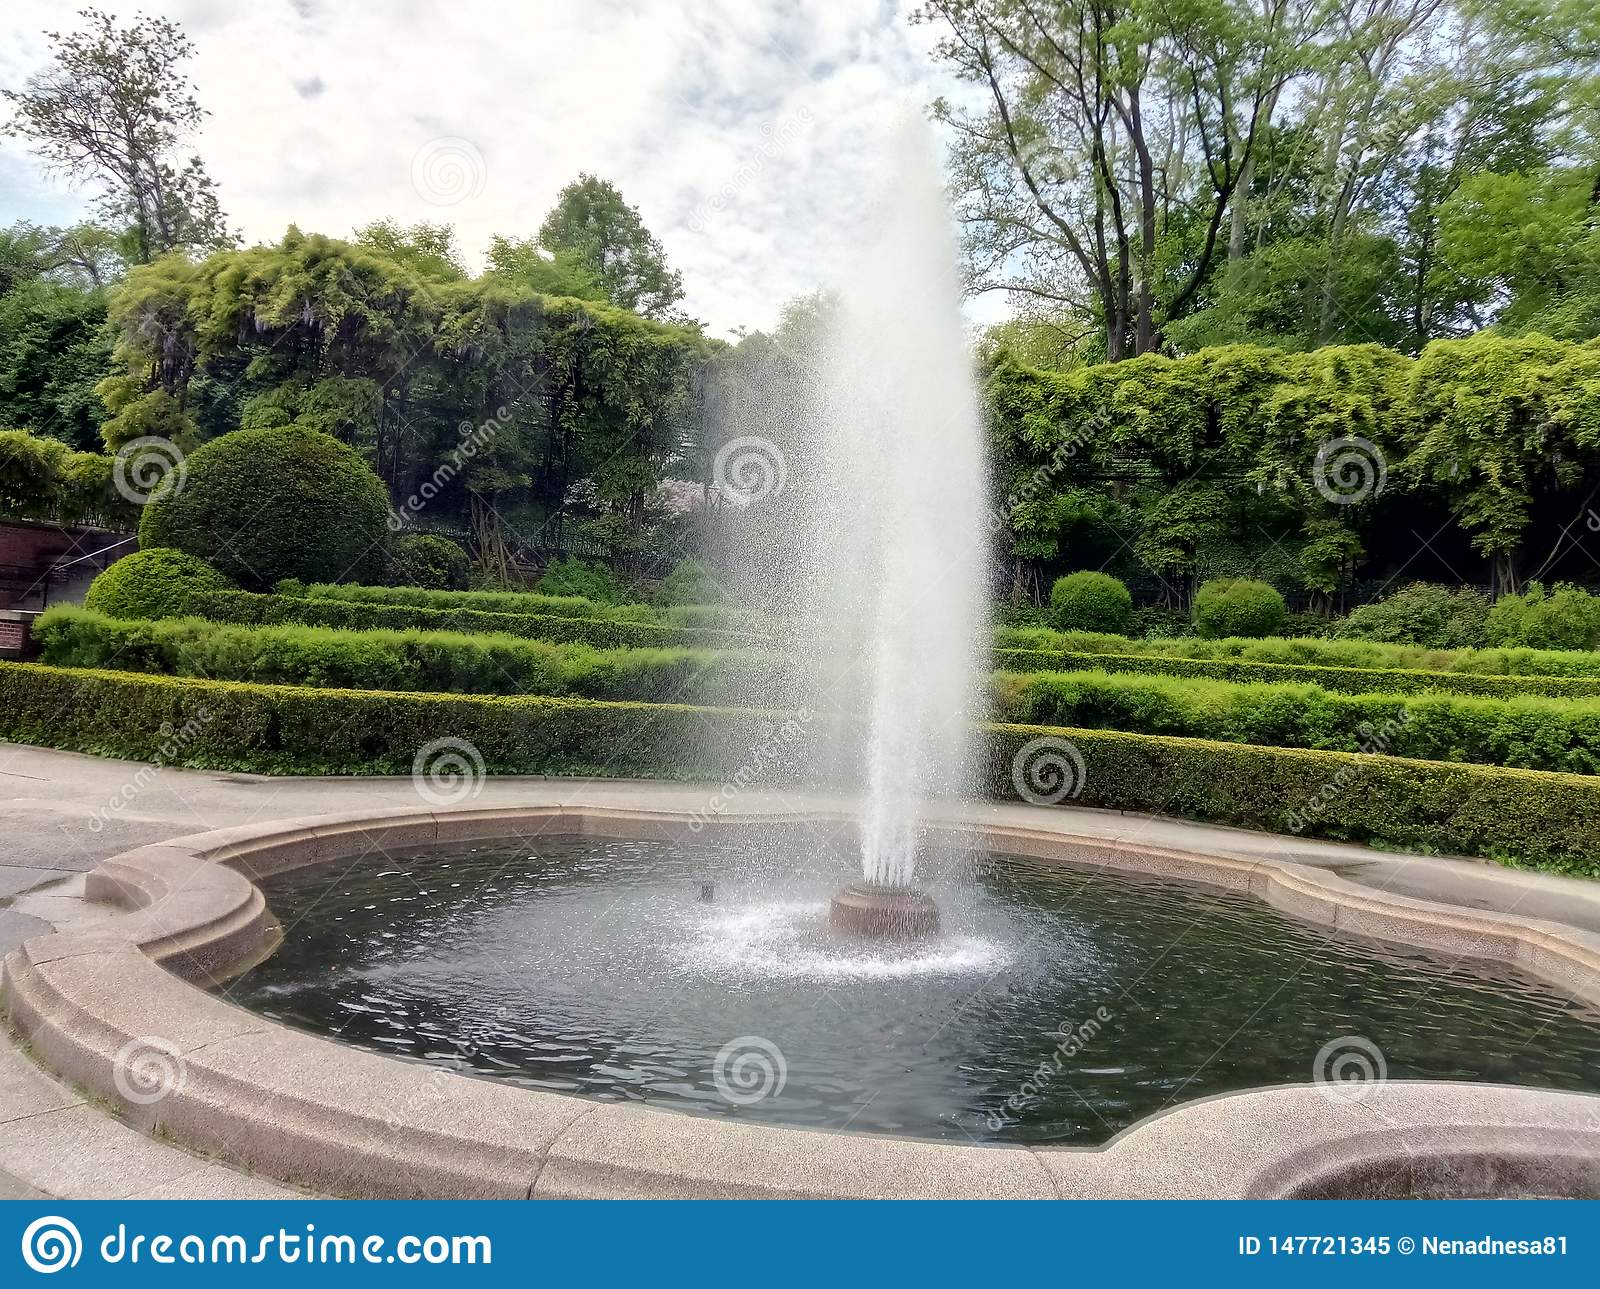 Fontain in Central Park, New York